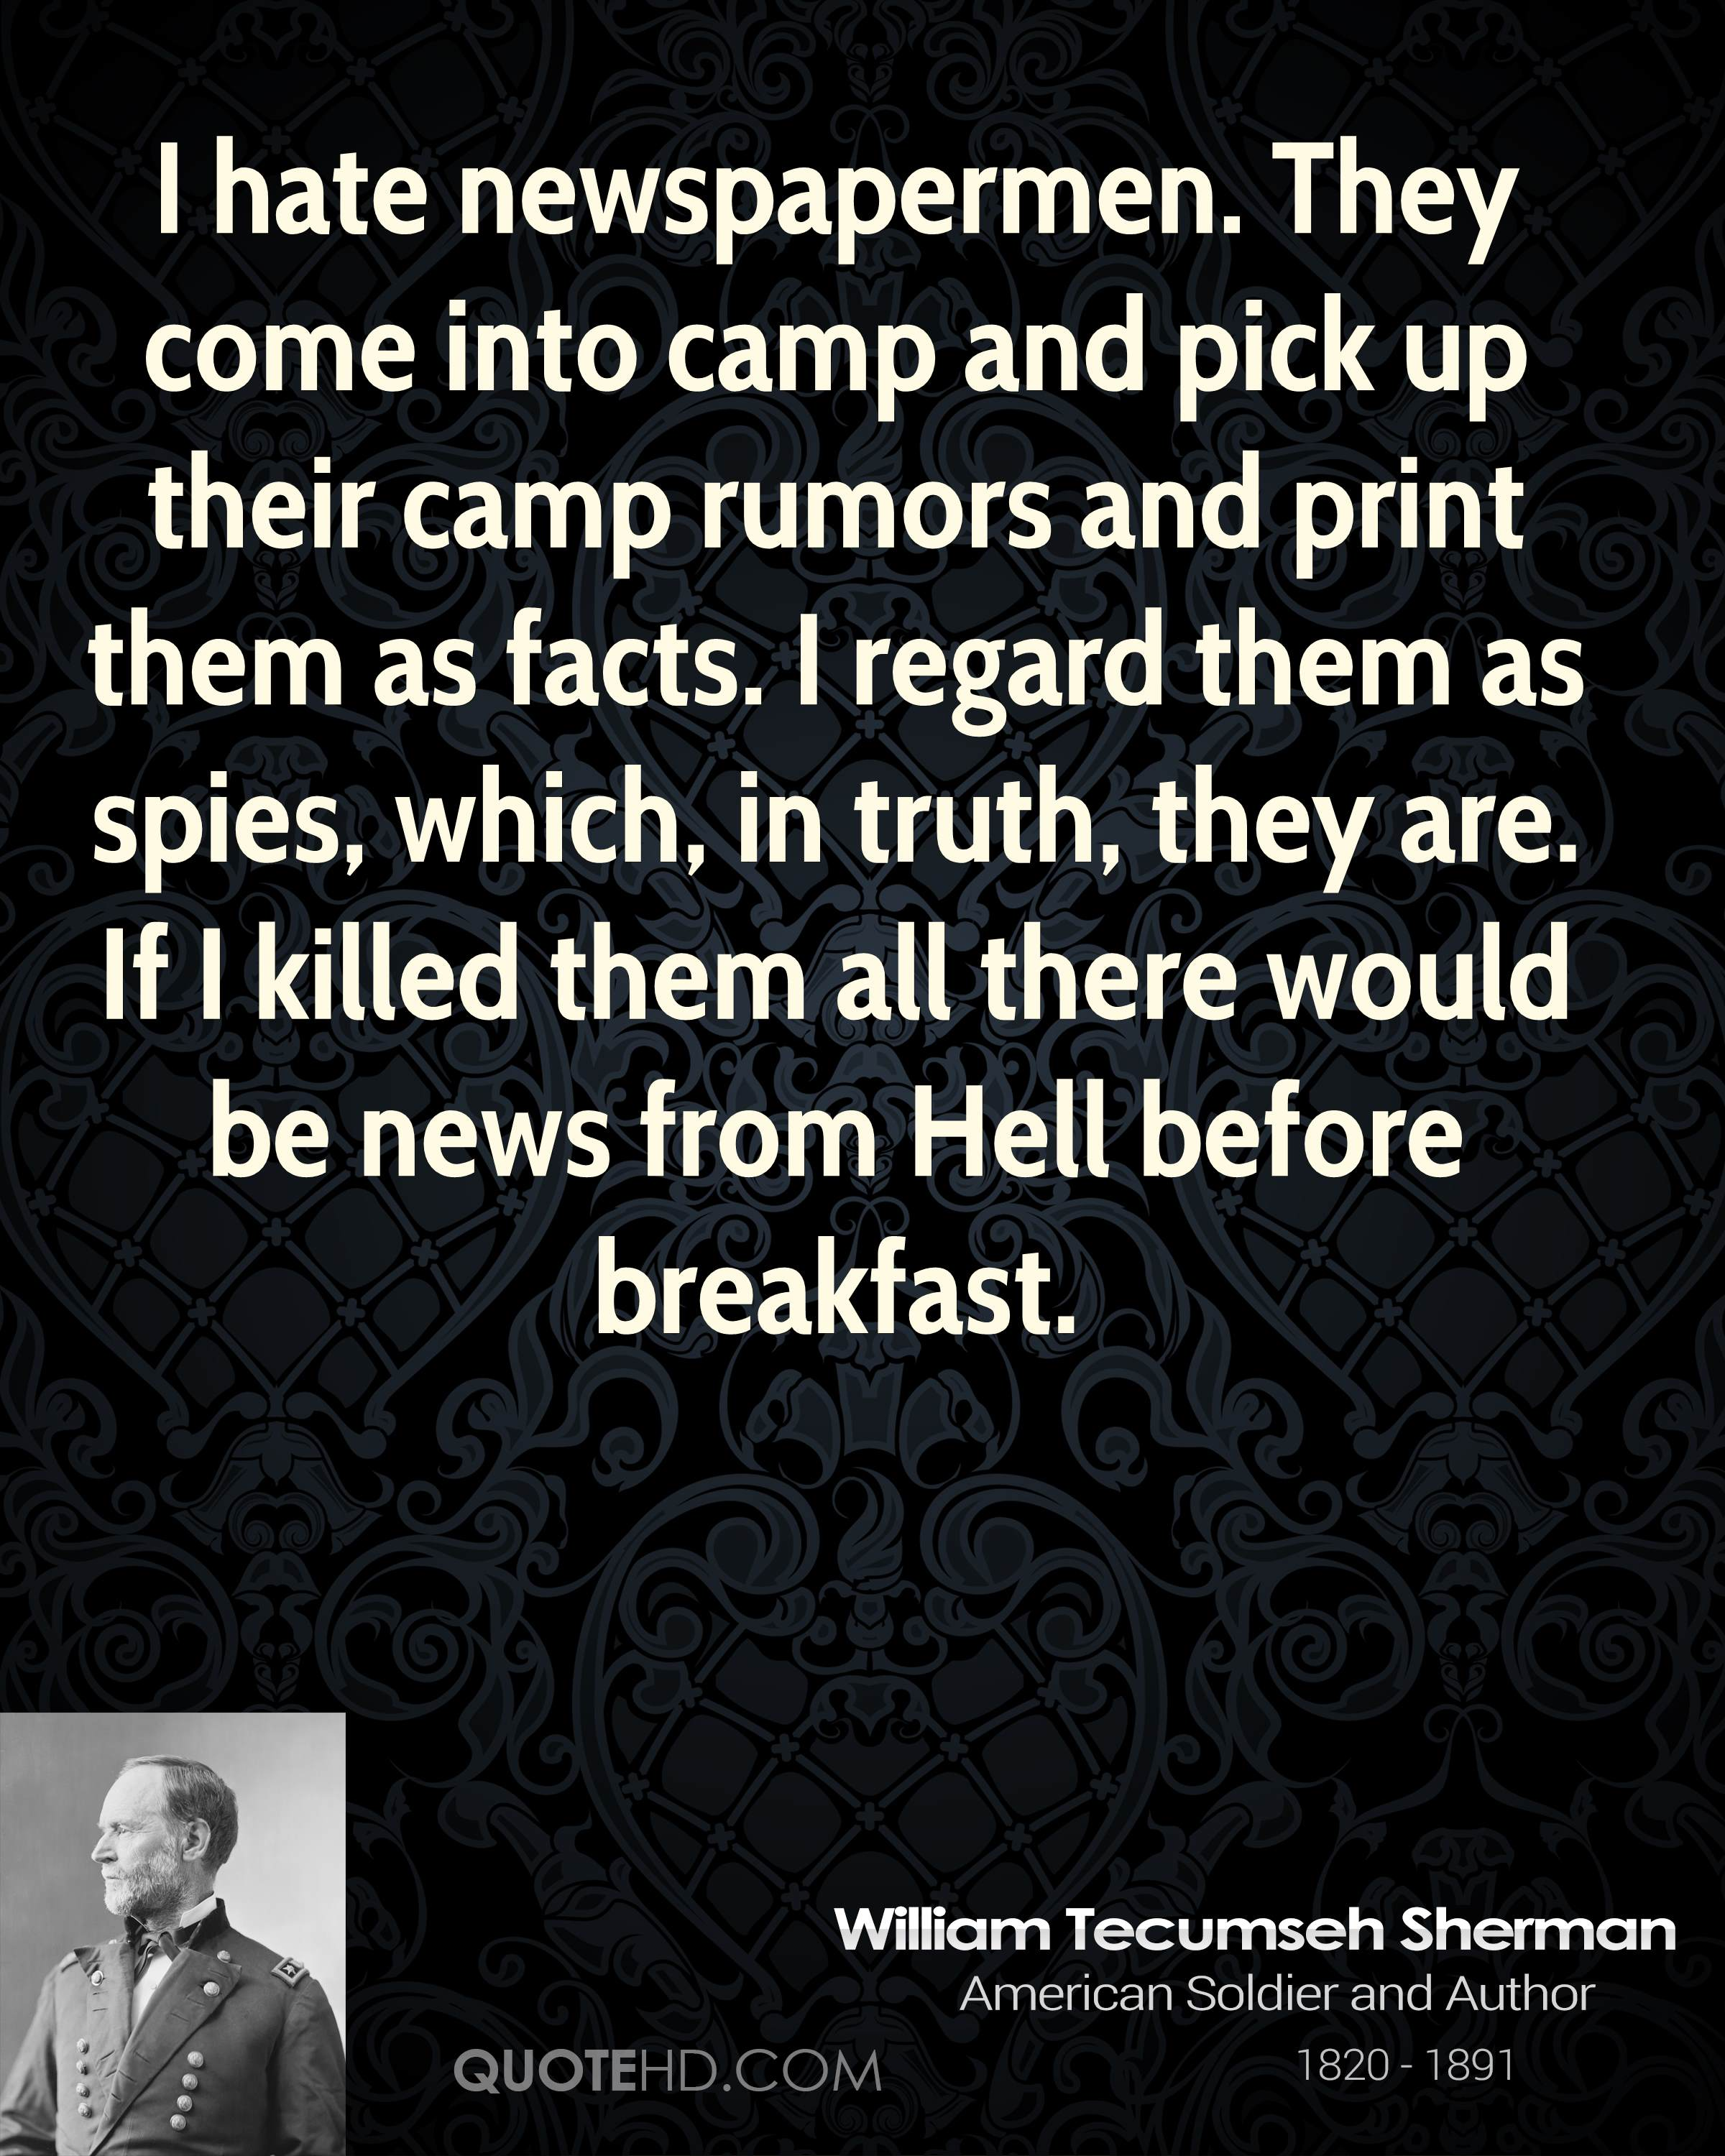 I hate newspapermen. They come into camp and pick up their camp rumors and print them as facts. I regard them as spies, which, in truth, they are. If I killed them all there would be news from Hell before breakfast.